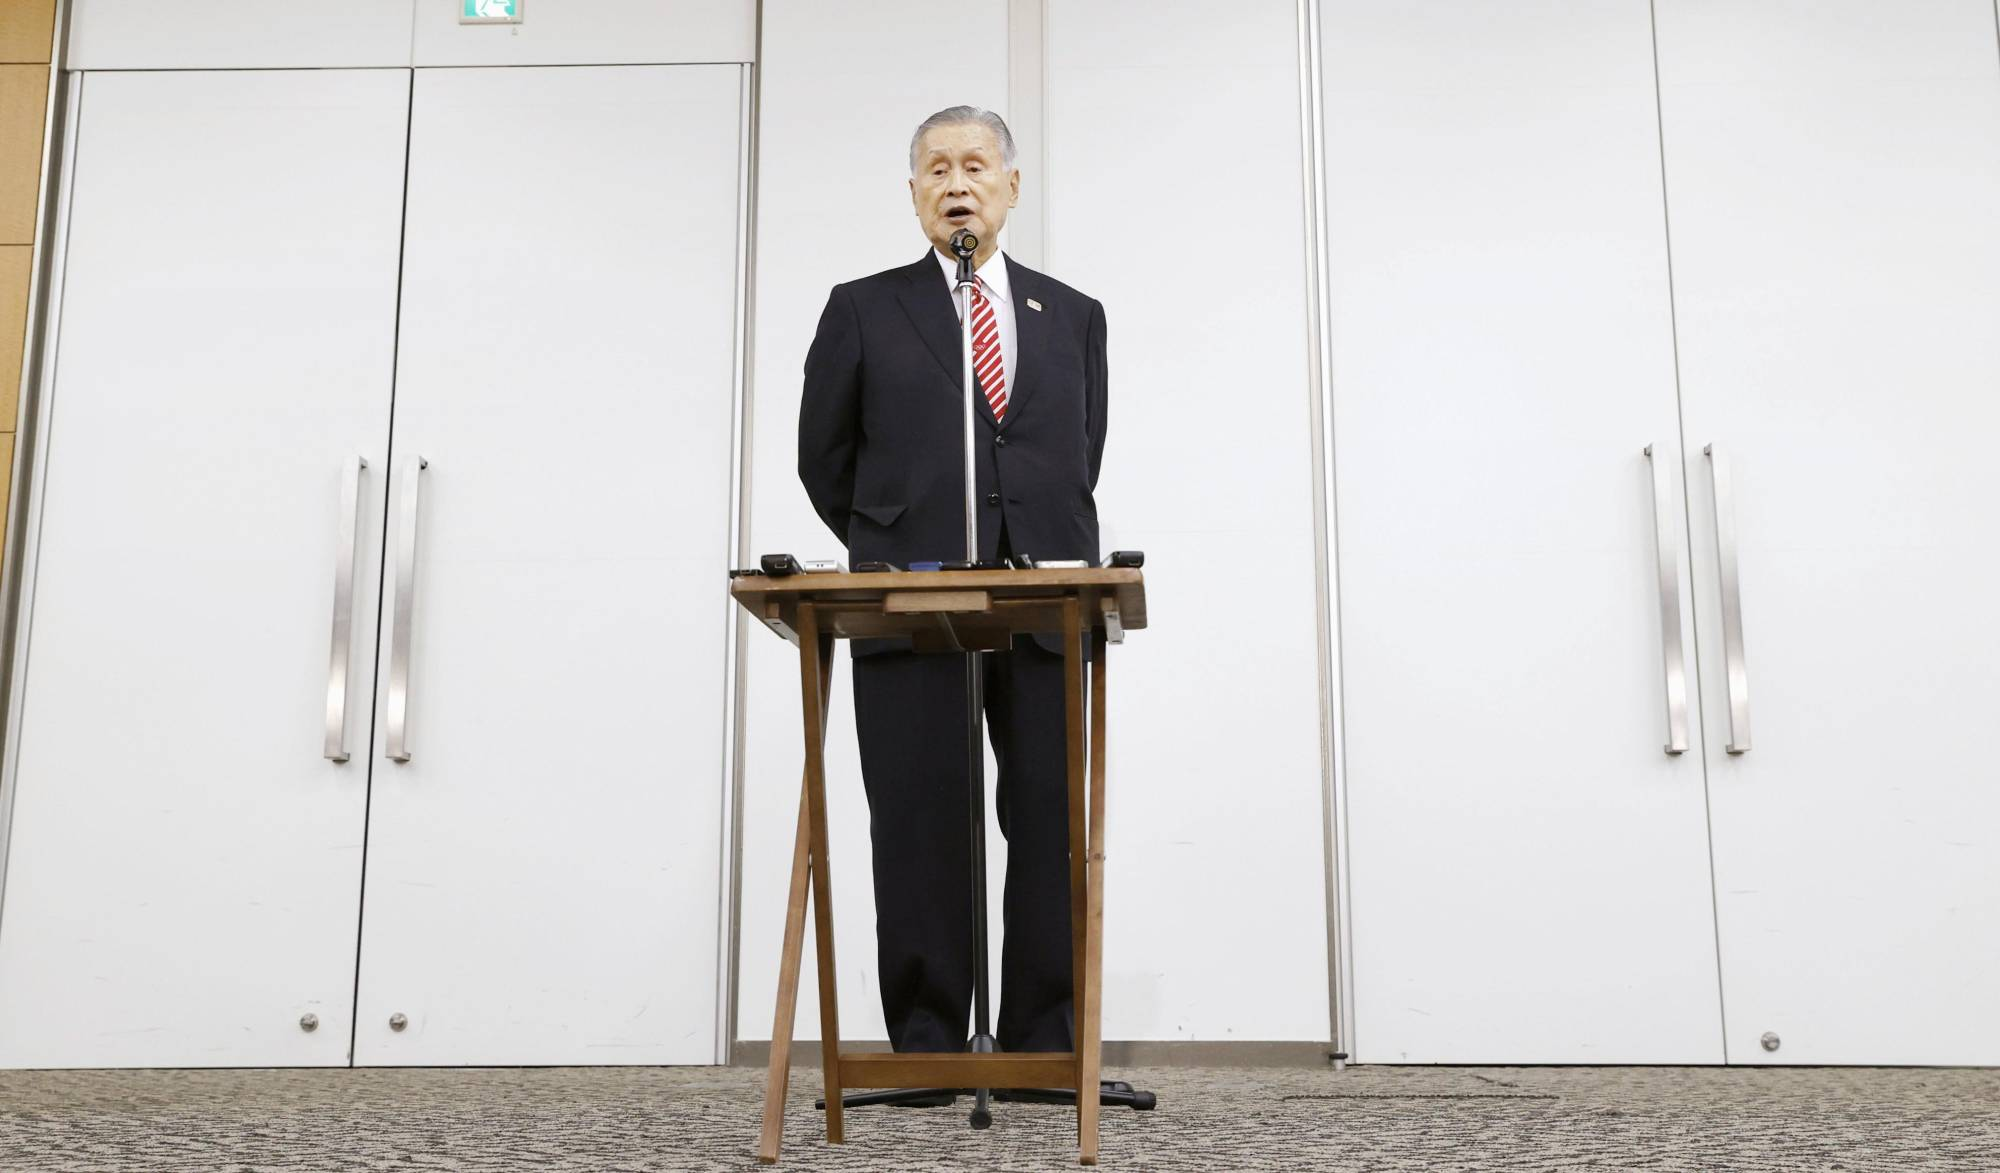 Tokyo 2020 head Yoshiro Mori speaks at a news conference in Tokyo on Thursday. | KYODO